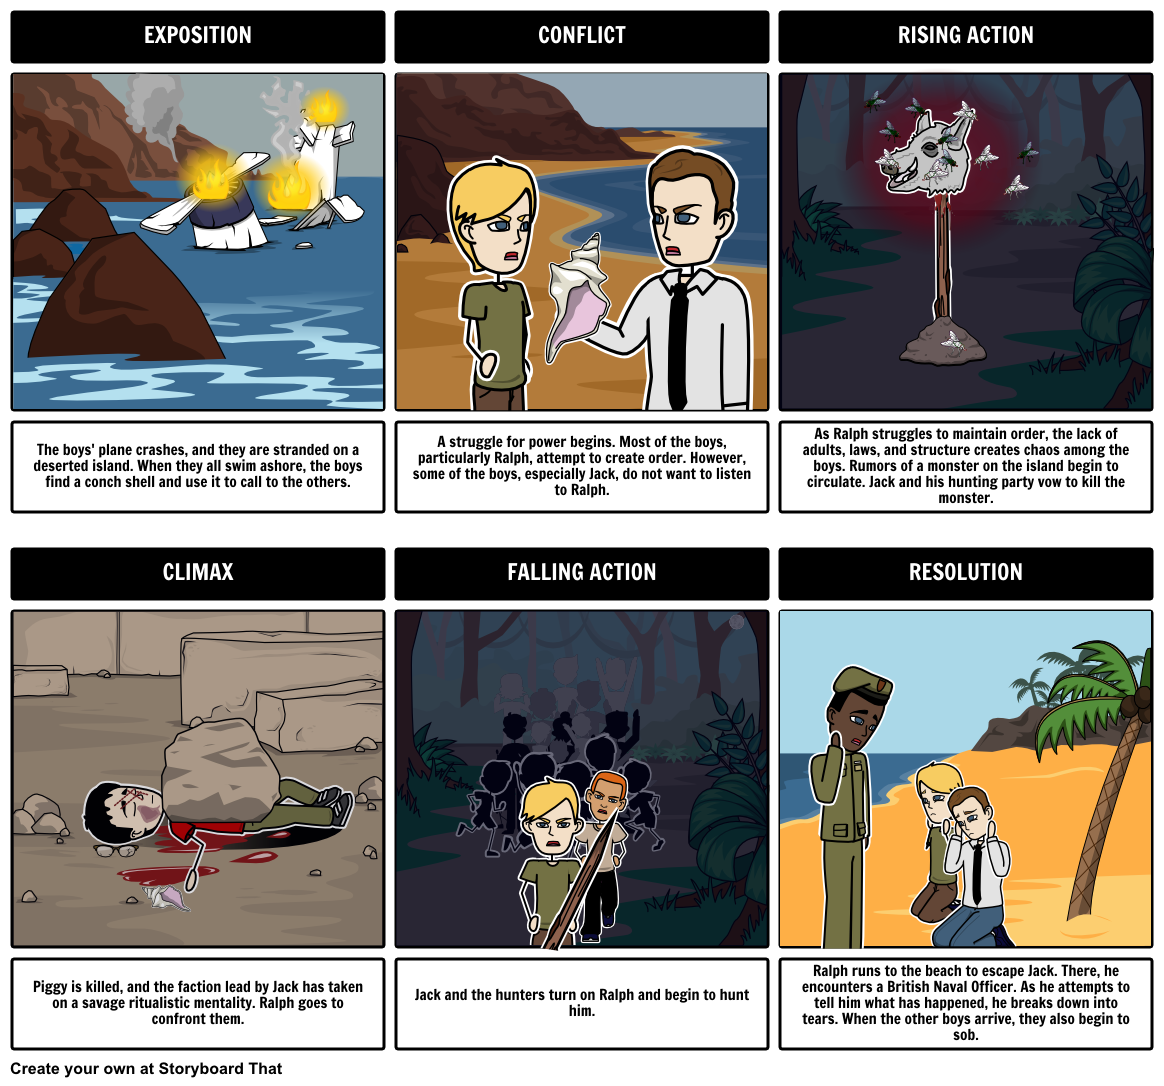 lord of the flies plot diagram 12 volt und 7 anper batterien gell pin by storyboard that on lesson plans a is great way for students to pick out key events in